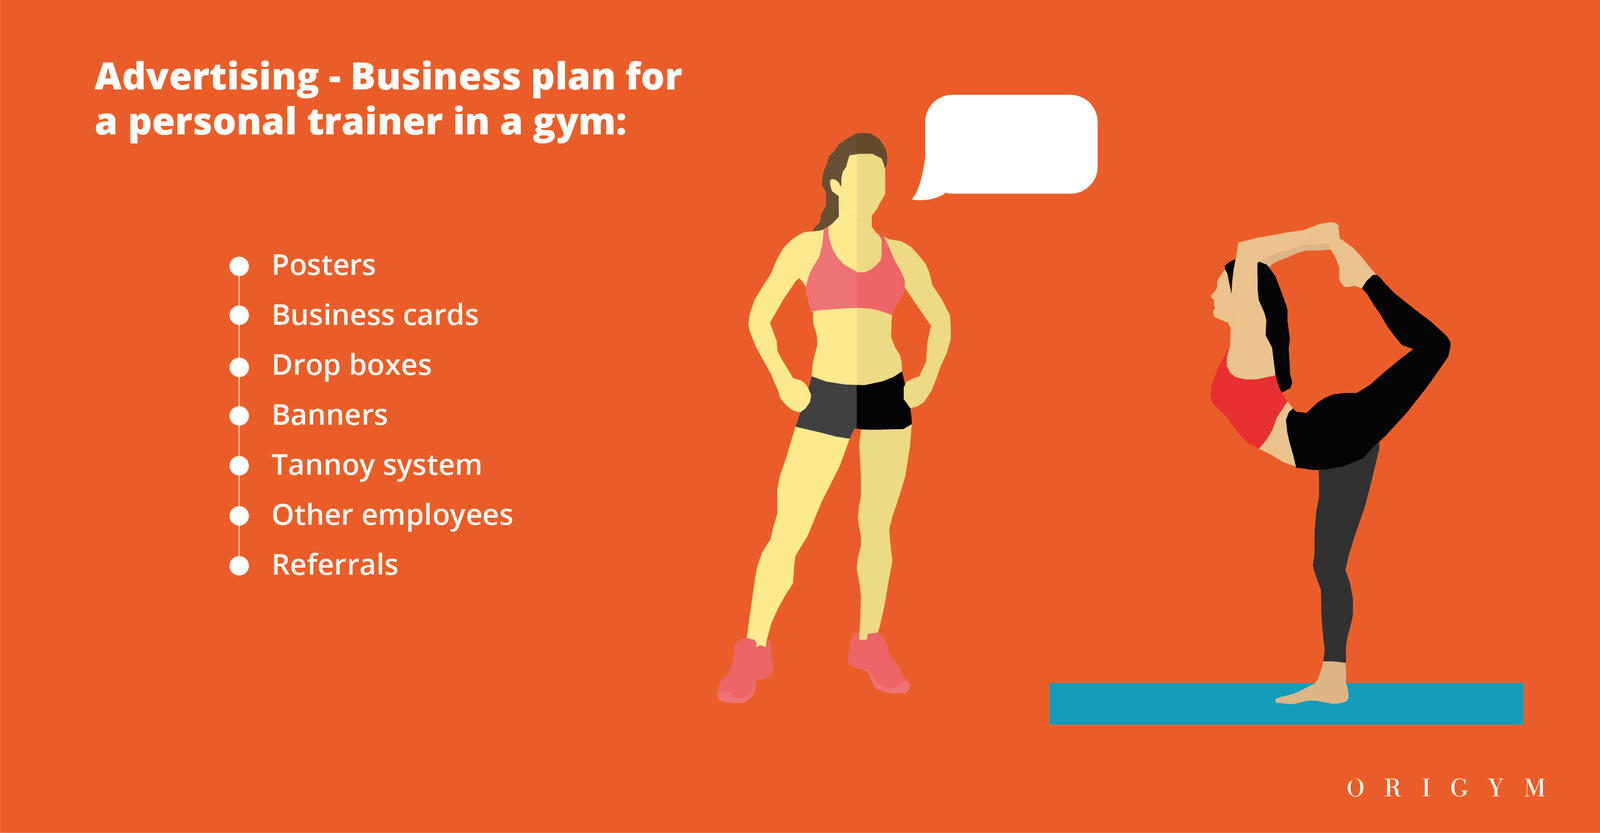 personal trainer business plan gym examples advertising marketing samples